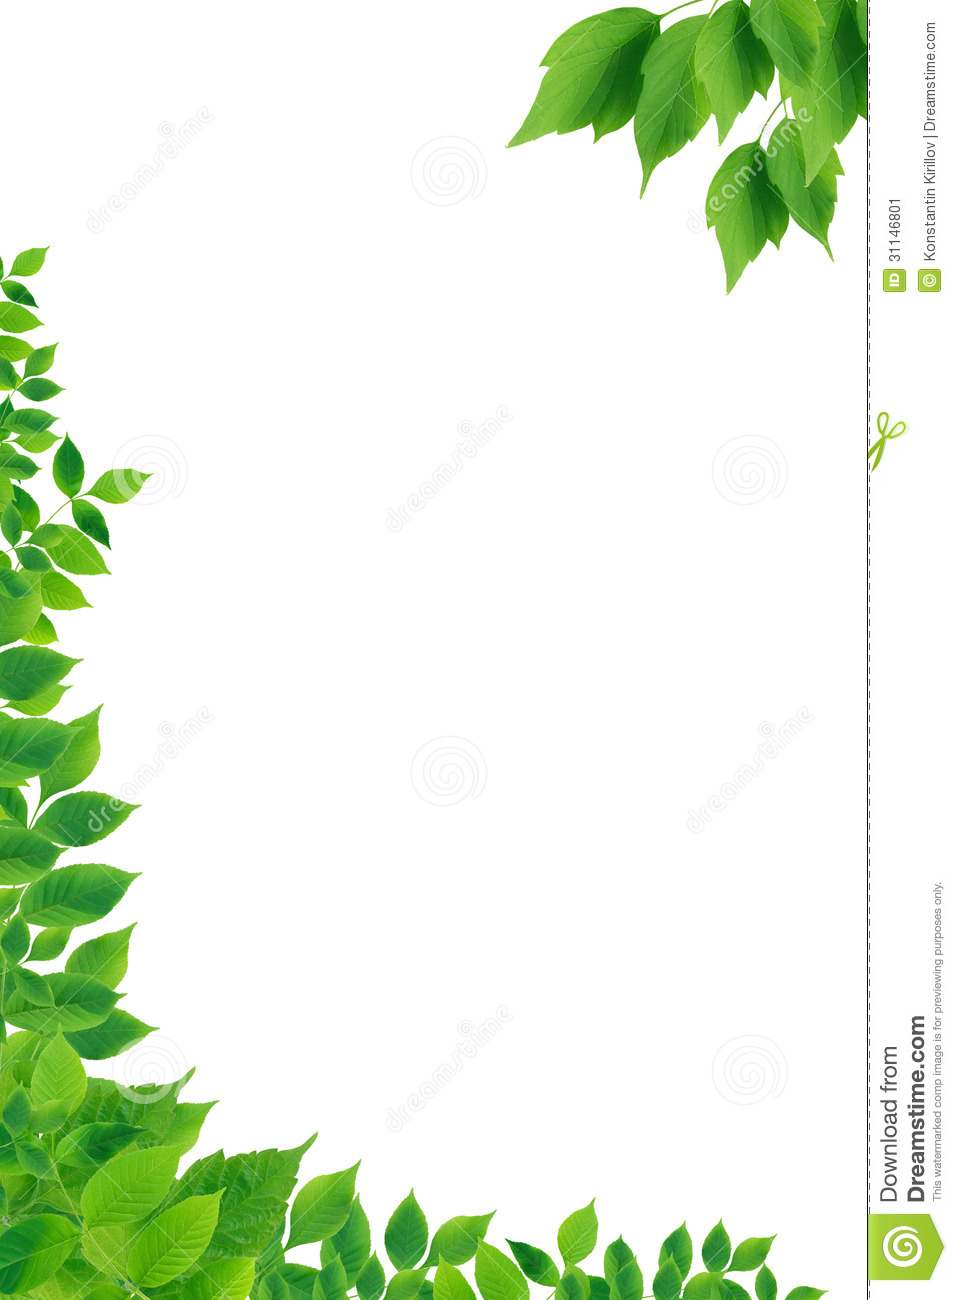 Green Leaves Border Stock Image - Image: 31146801